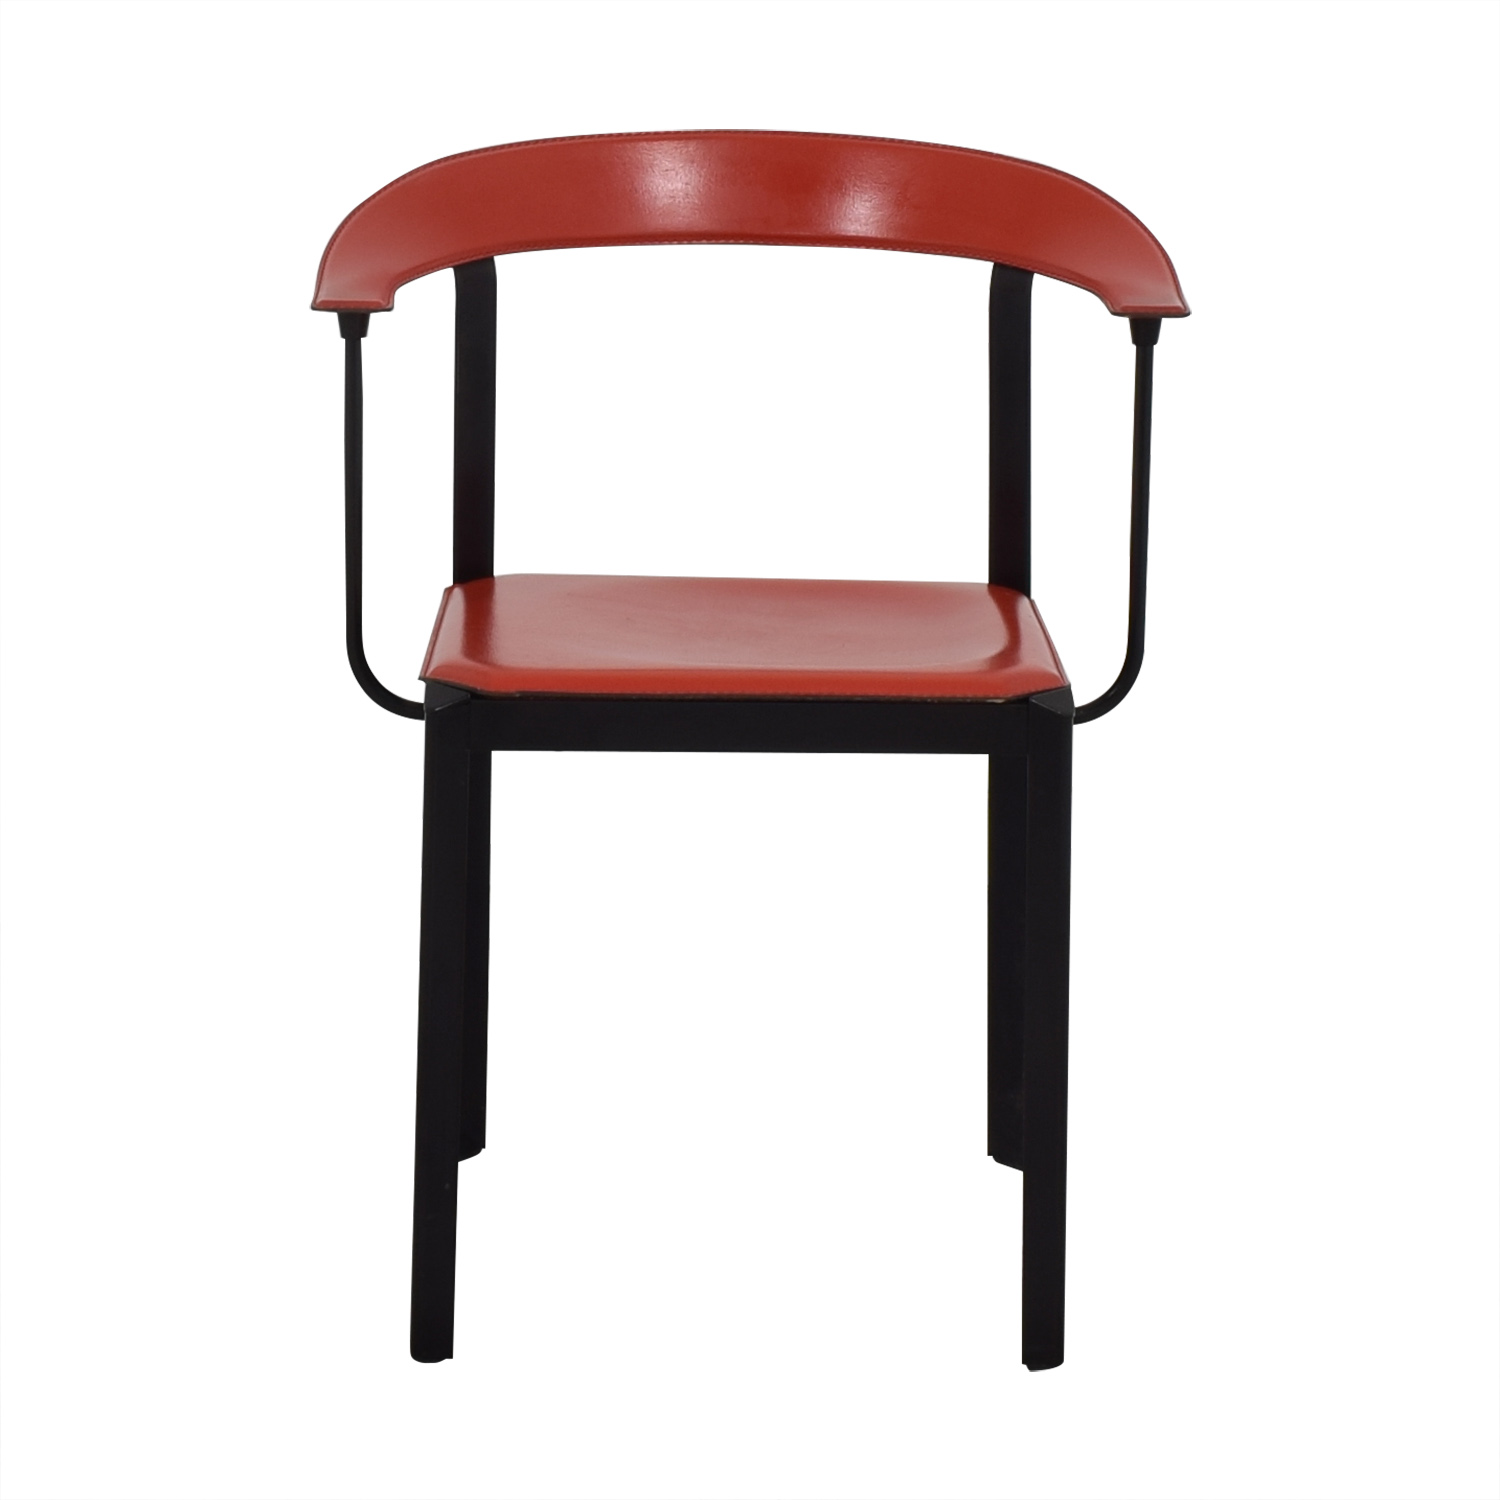 Art Deco Chair red and black